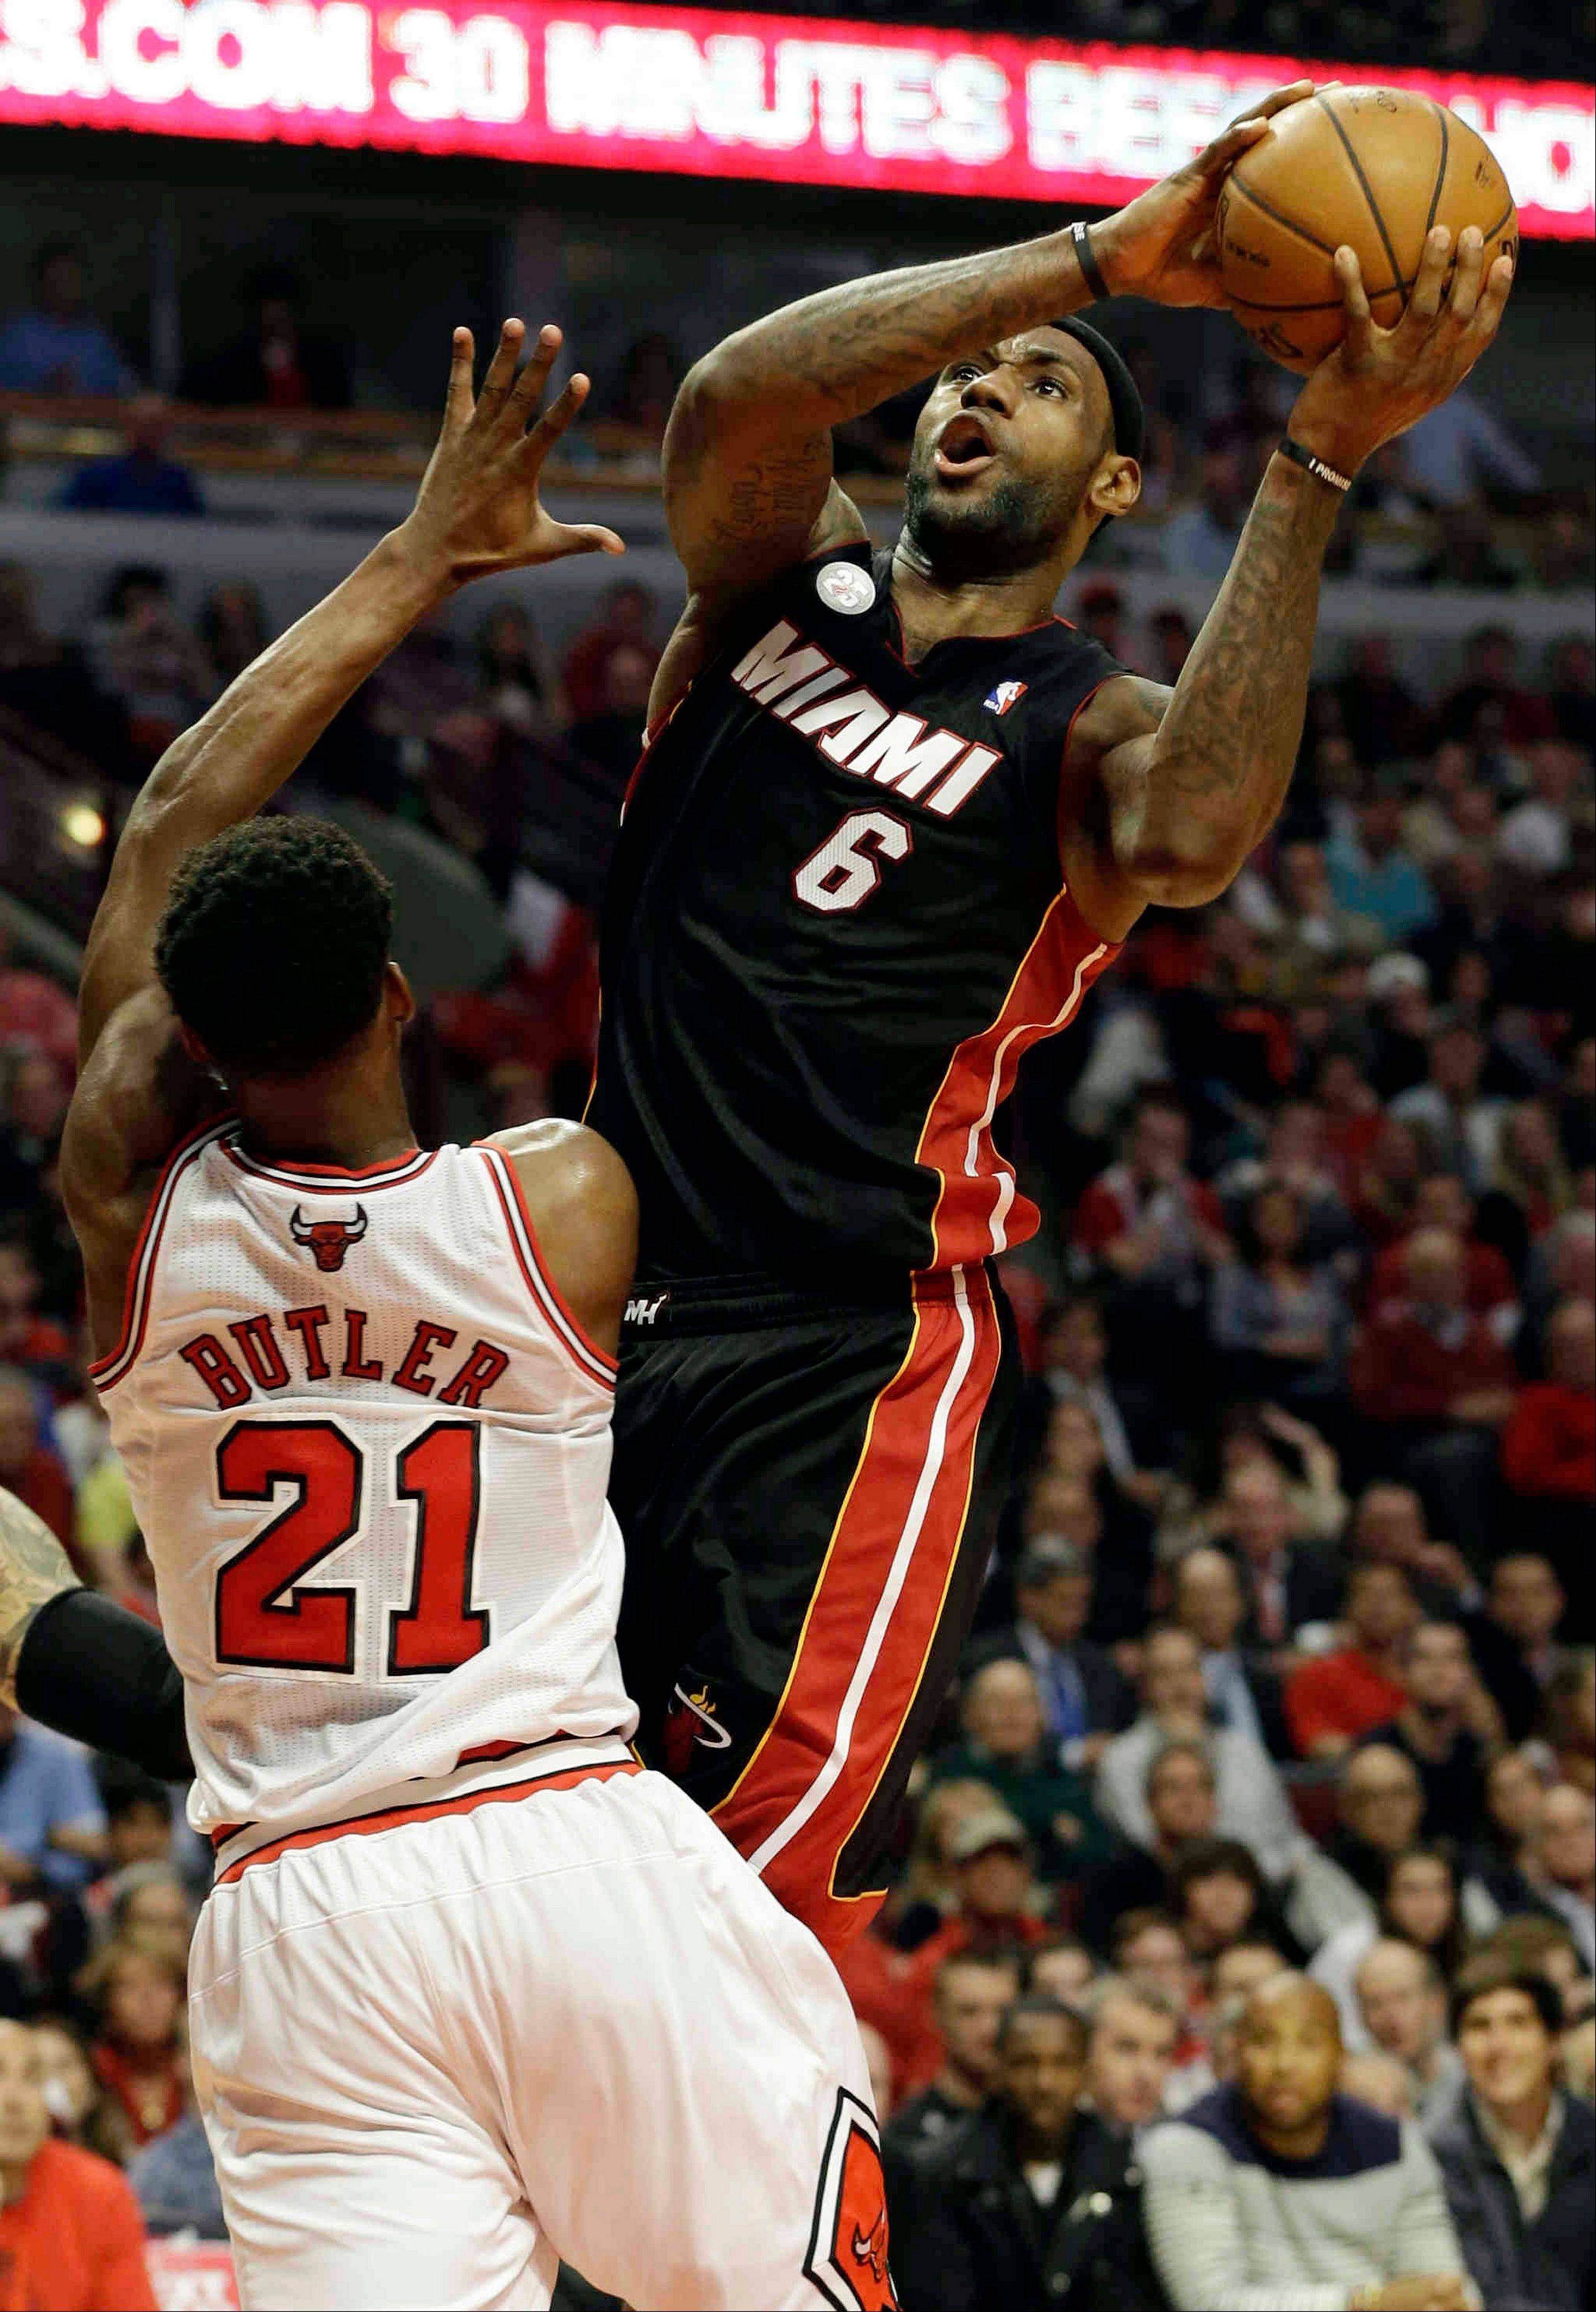 Miami Heat forward LeBron James goes up for a shot against Bulls forward Jimmy Butler during the first half of Game 4 of an NBA basketball playoffs Eastern Conference semifinal on Monday, May 13, 2013, in Chicago.